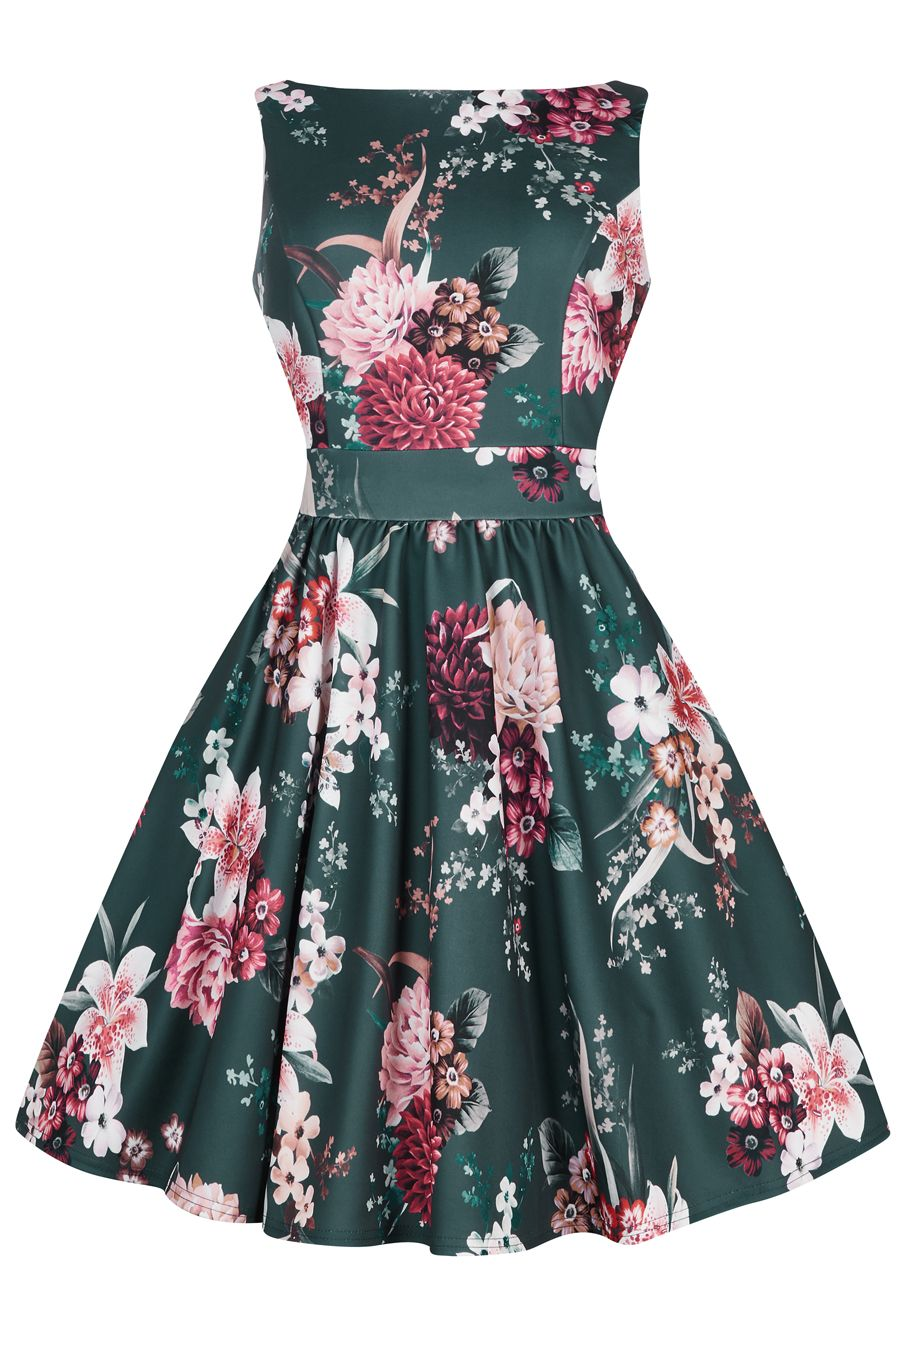 Brand New For Autumn 2016 This Classic Lady Vintage 50s Tea Dress Features A 50s Tea Dress Floral Tea Dress Black And White Prom Dresses [ 1350 x 900 Pixel ]